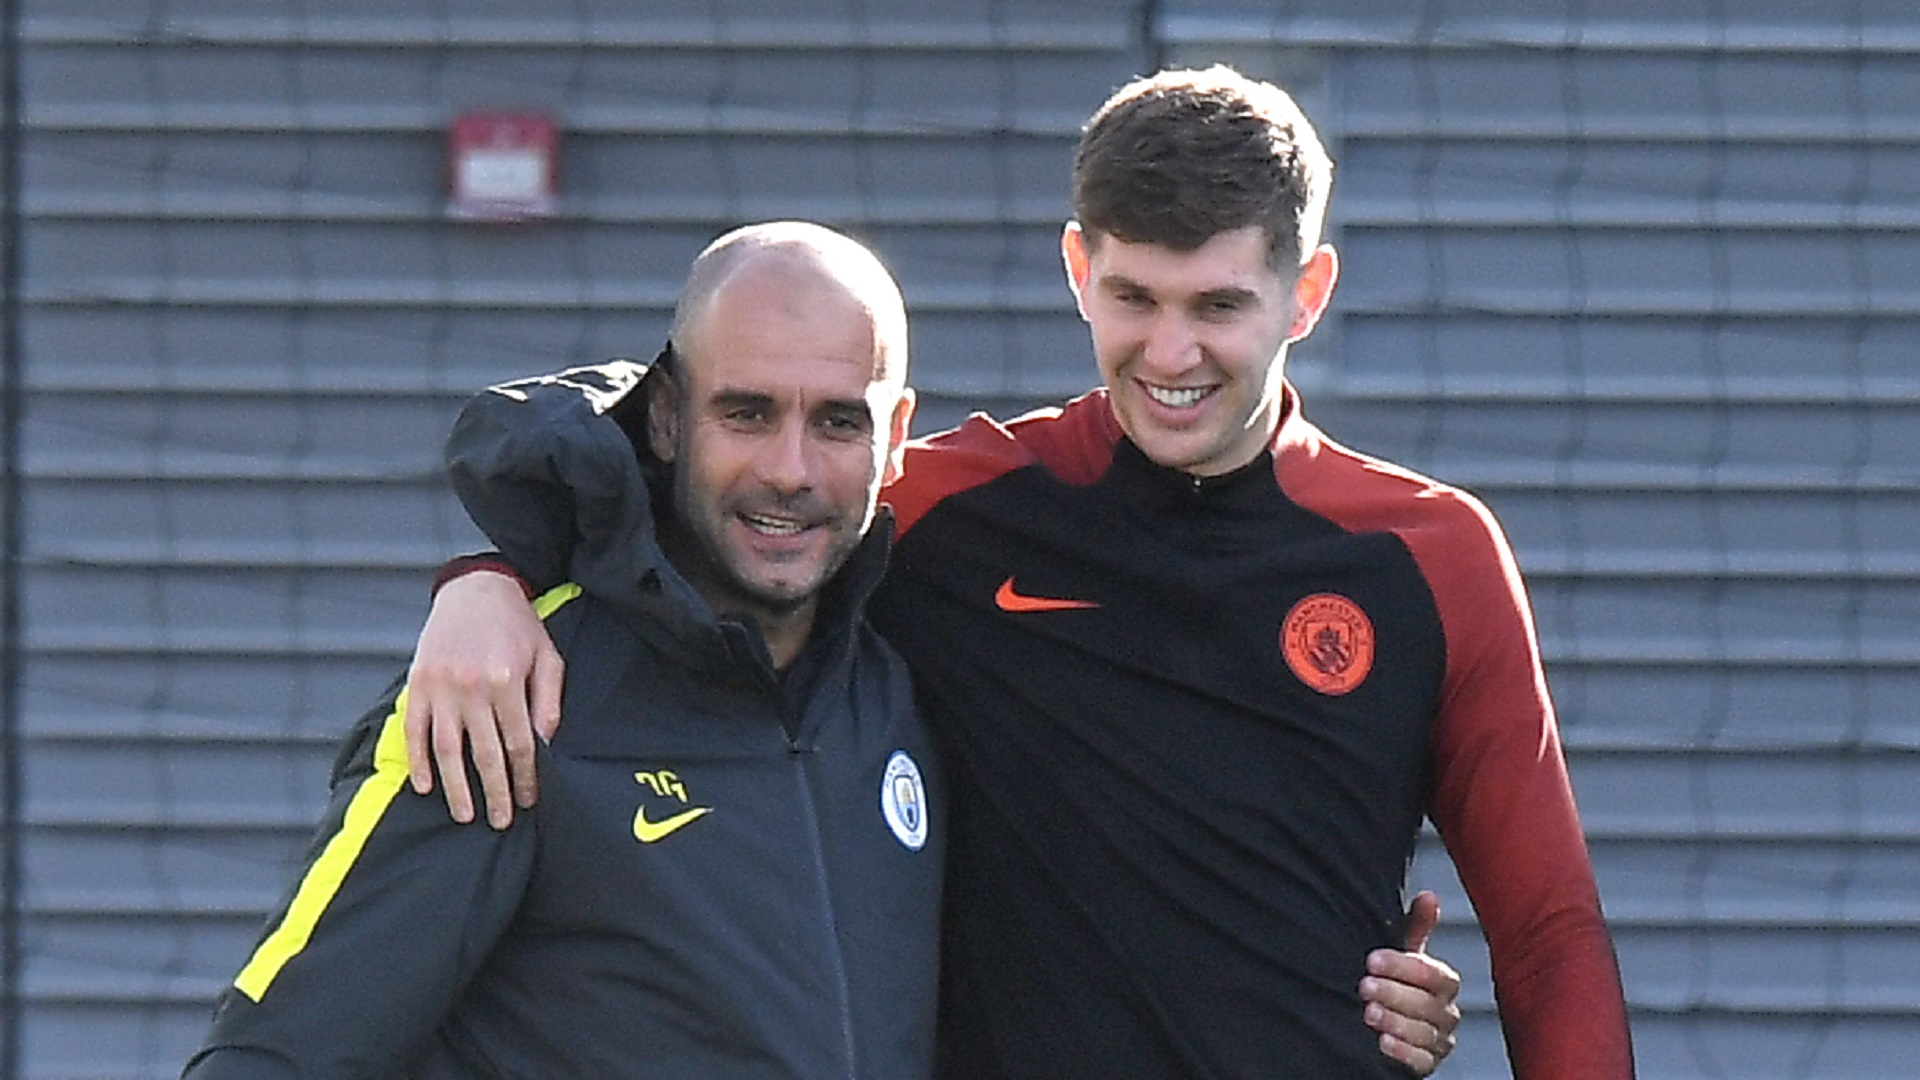 'We are going to buy 500 million players?' - Man City boss Guardiola brushes off Stones to Arsenal rumours